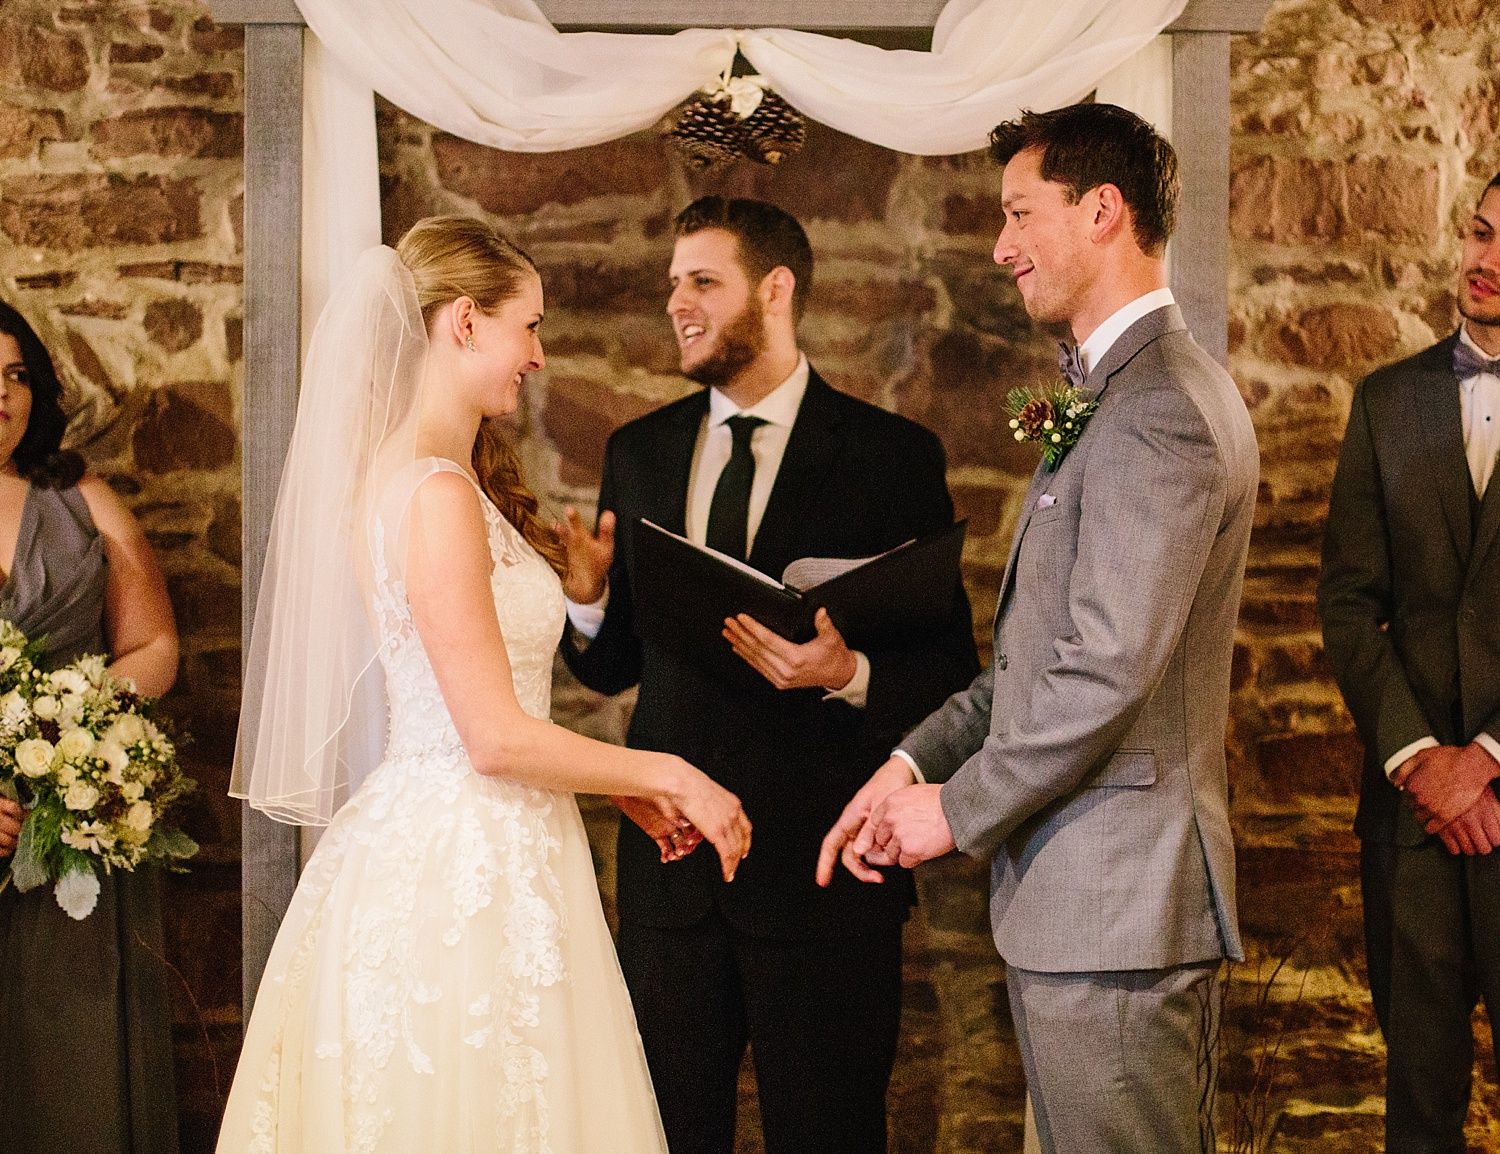 jessdavid_barnonbridge_phoenixville_winter_wedding_image_068.jpg